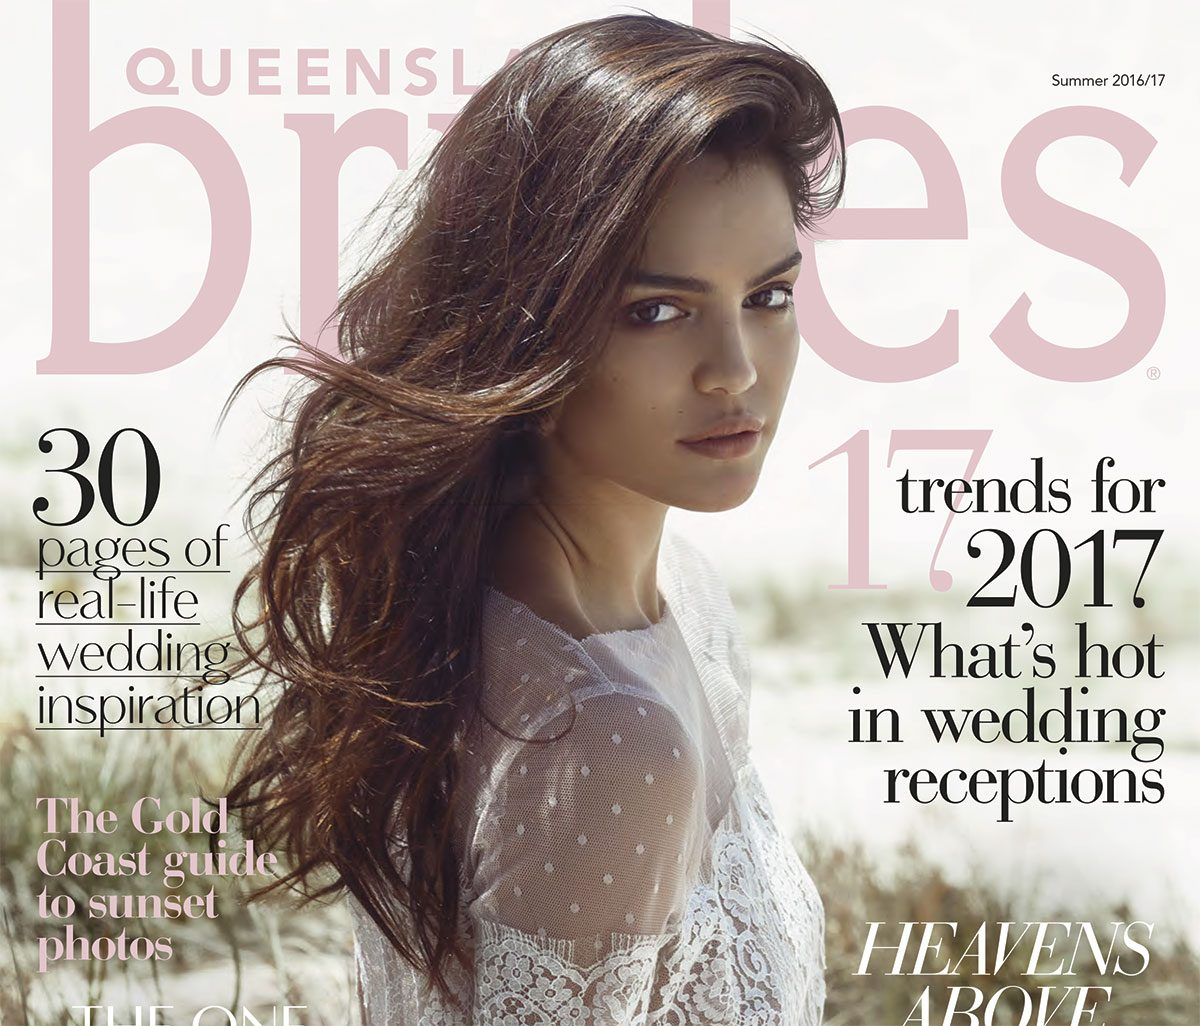 Queensland Brides Summer issue